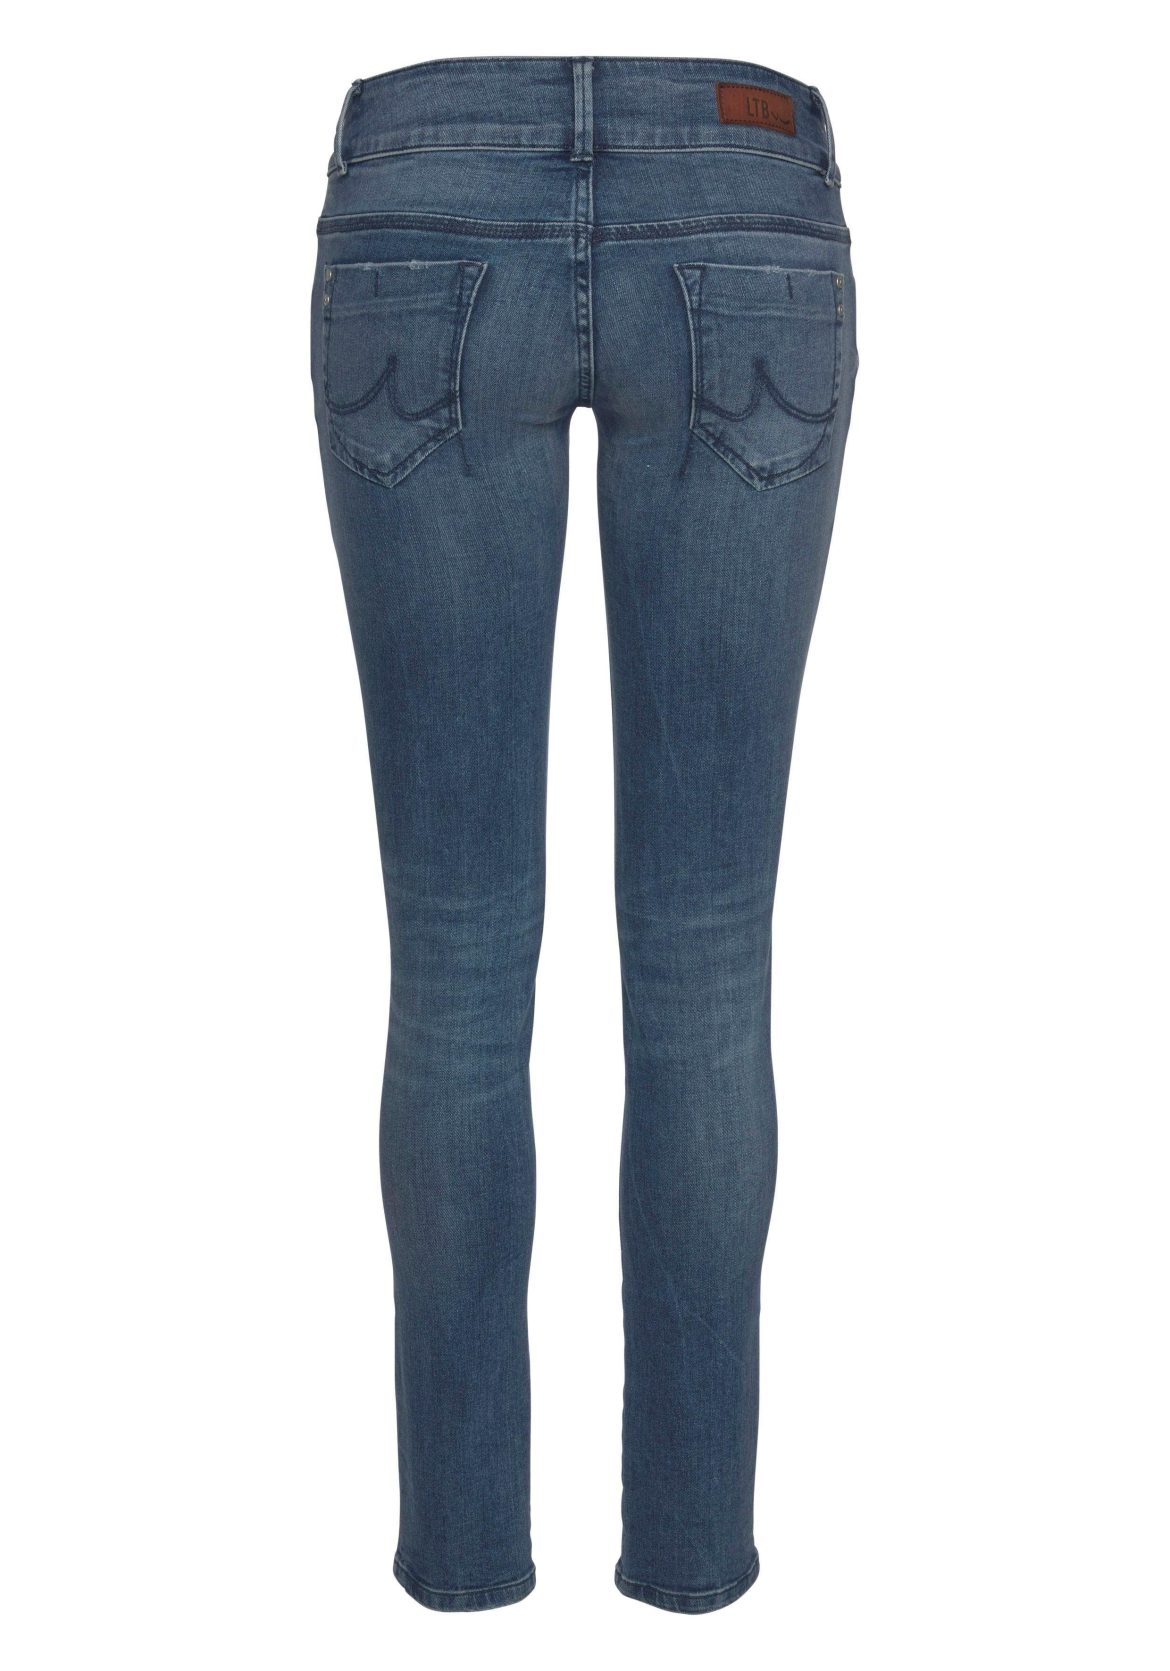 ltb slim fit jeans »molly« blauw